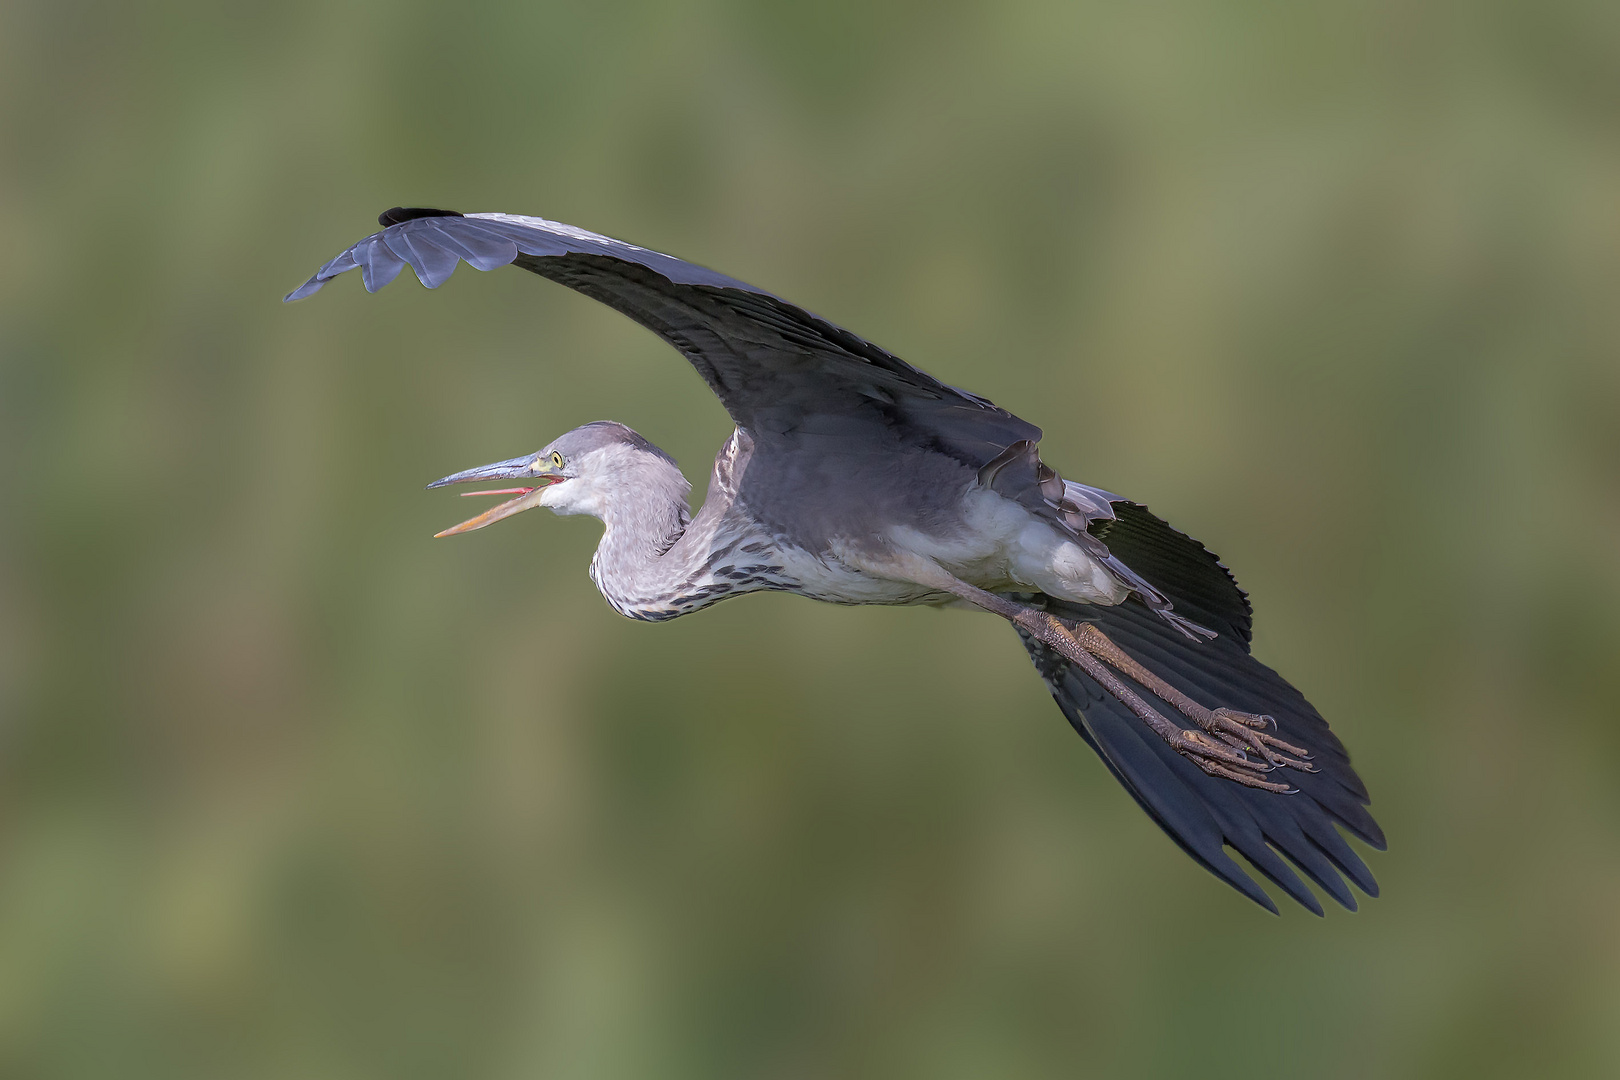 Gray heron in the flyby